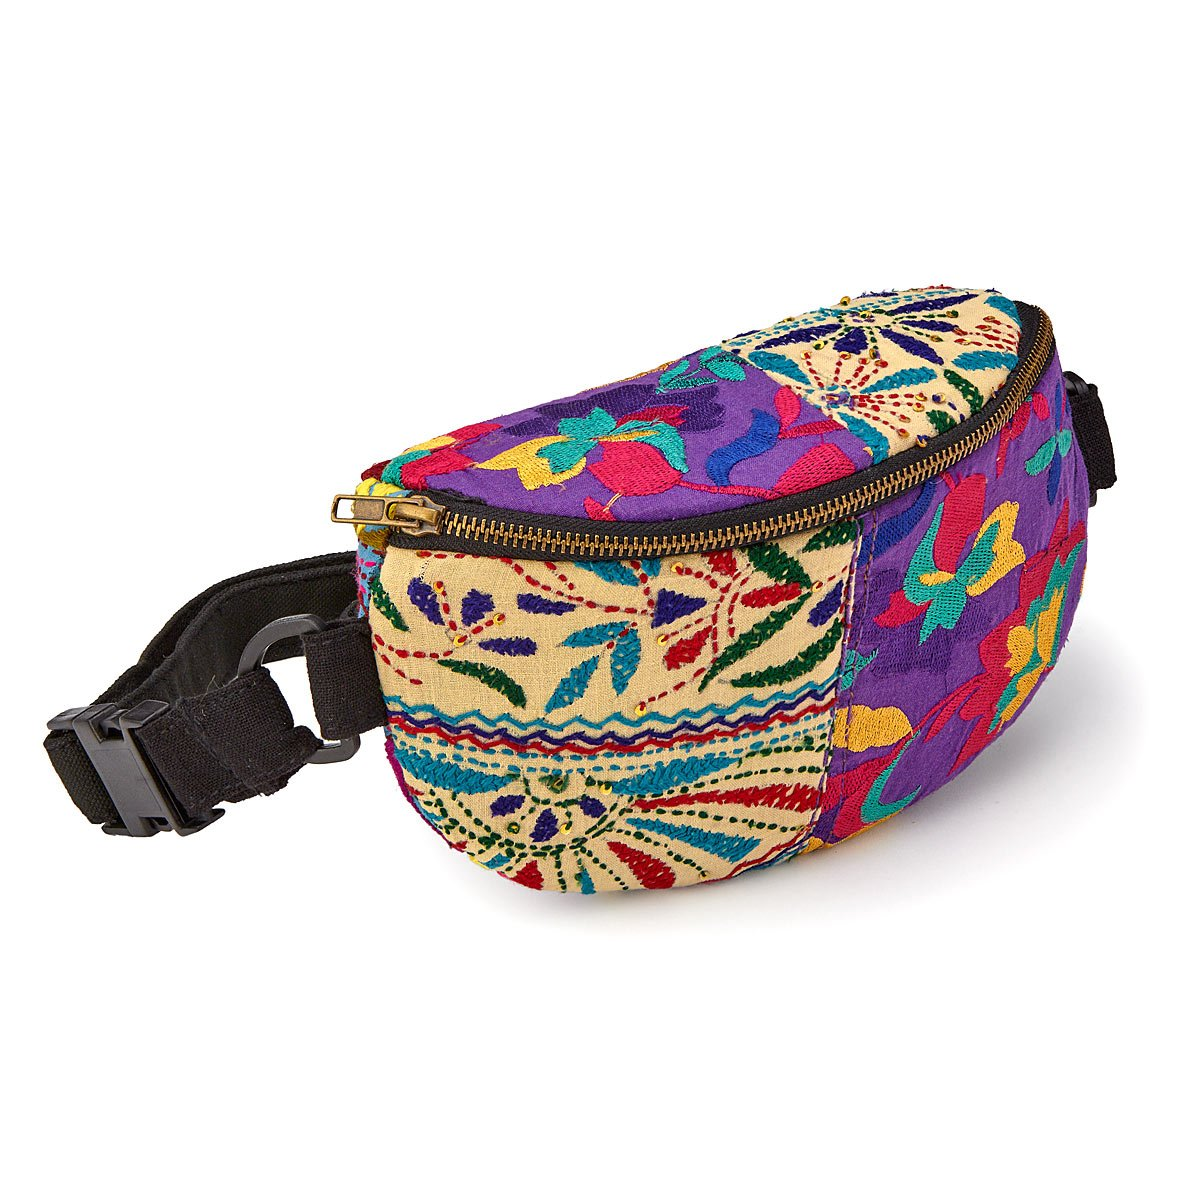 Upcycled Textiles Waist Pack | UncommonGoods